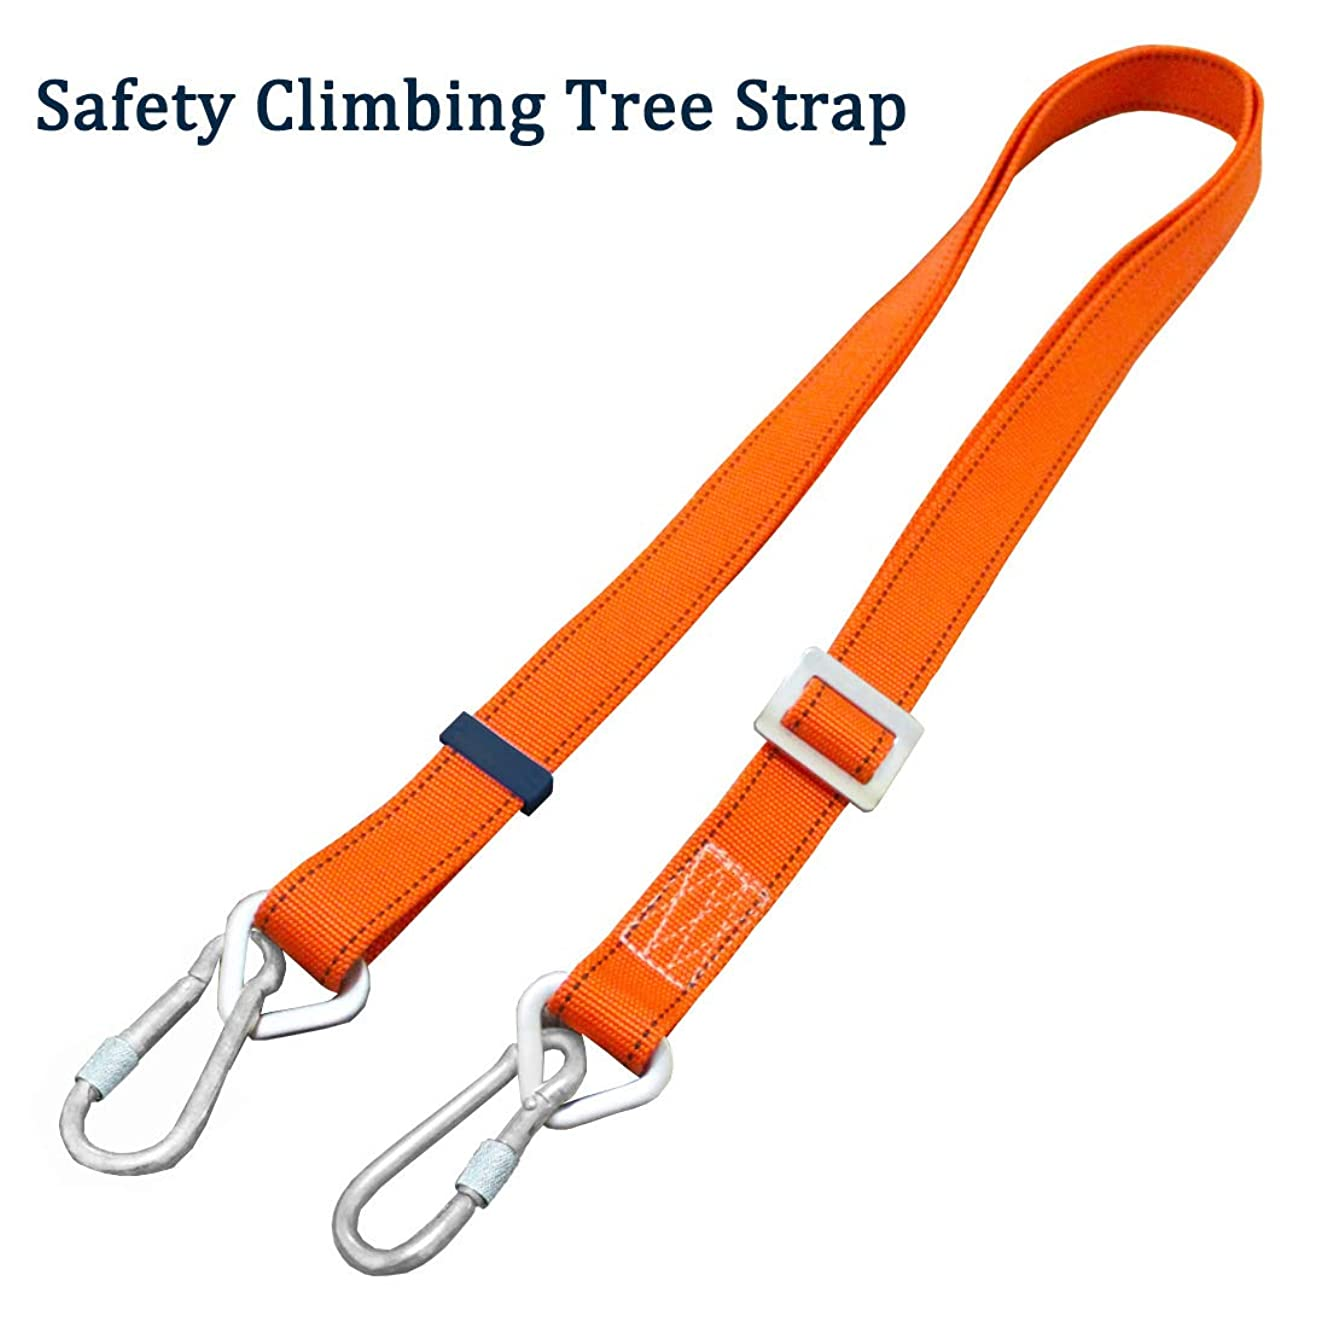 Boaton Safety Harness Tree Climbing Strap, Tree Climbing Gear, Linemans Belt, Add Level of Safety for Hanging Stand Or Step, Trimming Tree, Putting Up Deer Stand, Installing Steps, Ladder Or Climbing